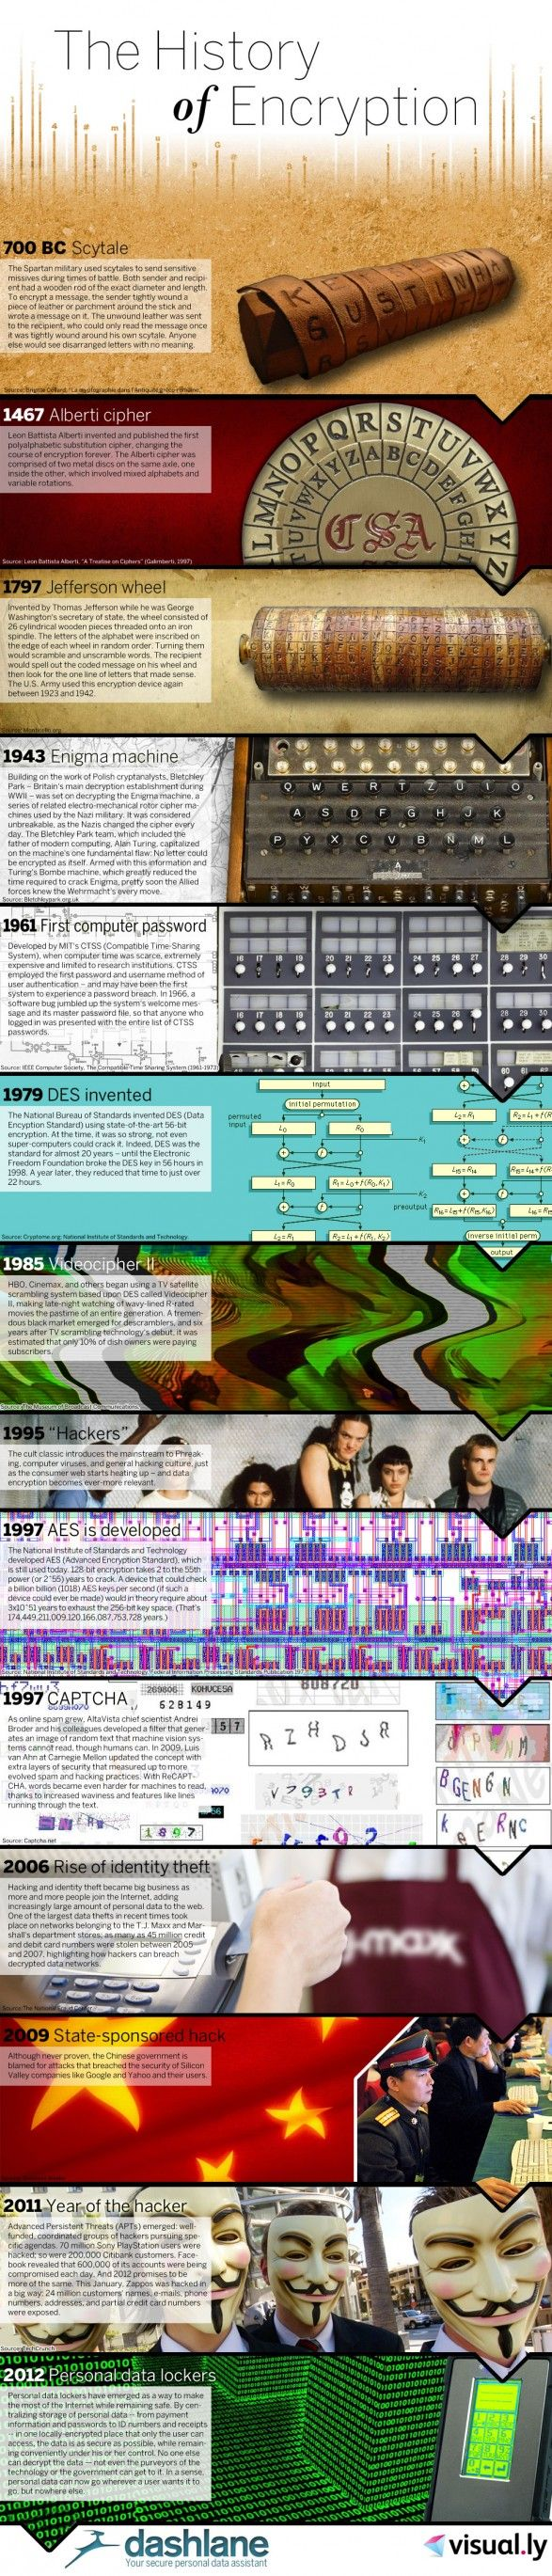 A history of encryption. Great stuff!